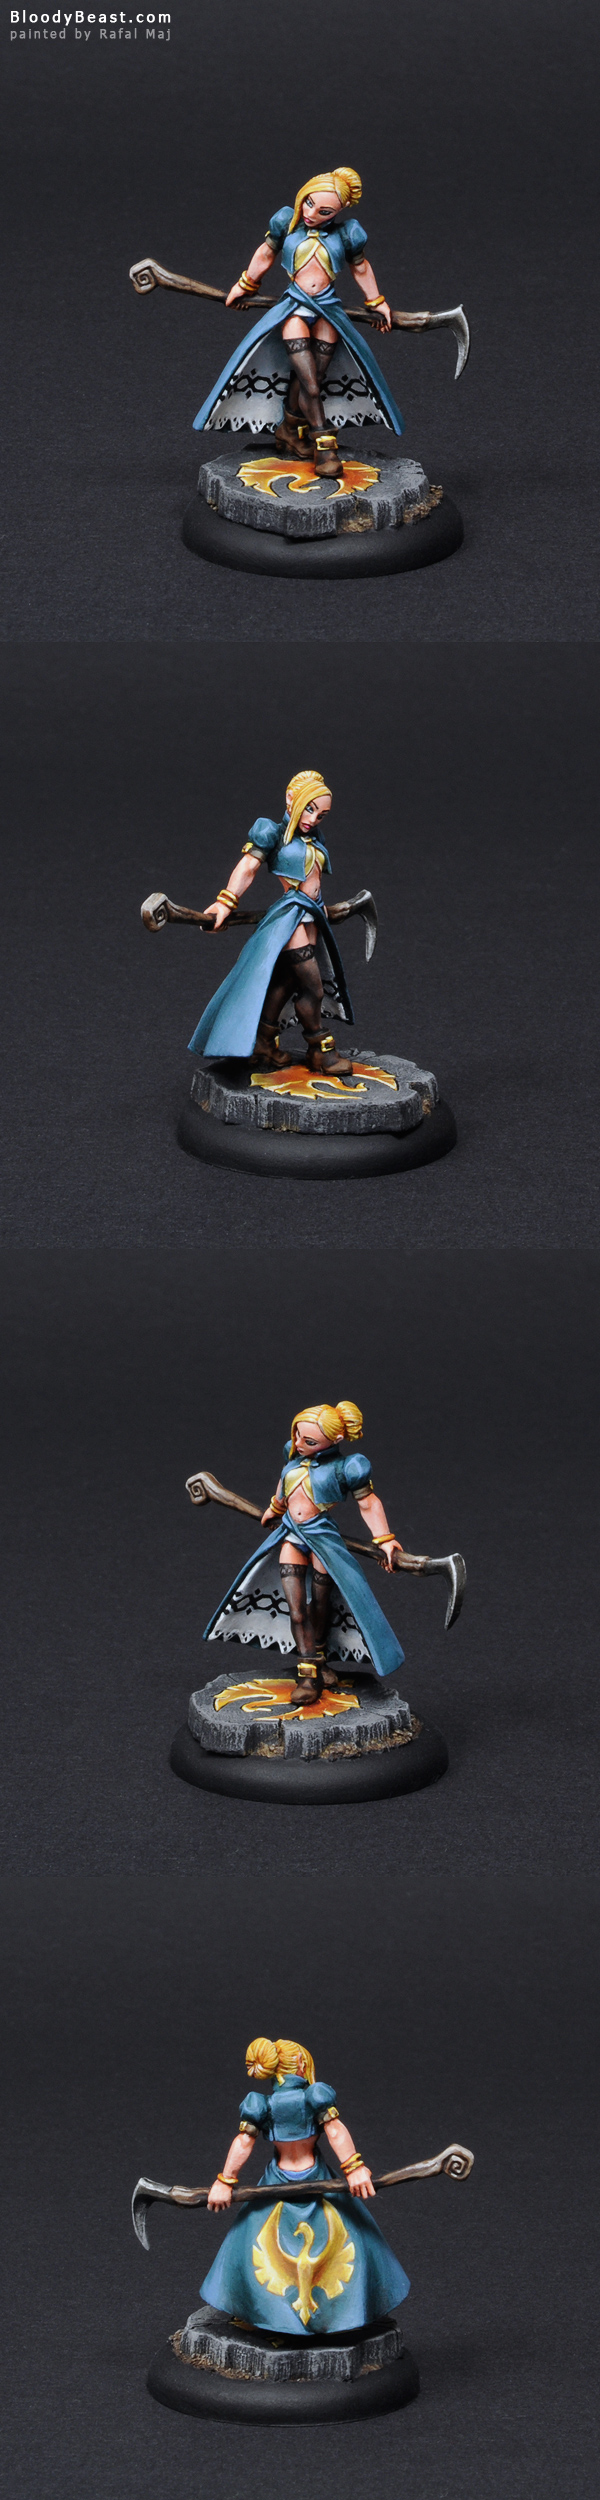 Freebooter Female Wizard painted by Rafal Maj (BloodyBeast.com)